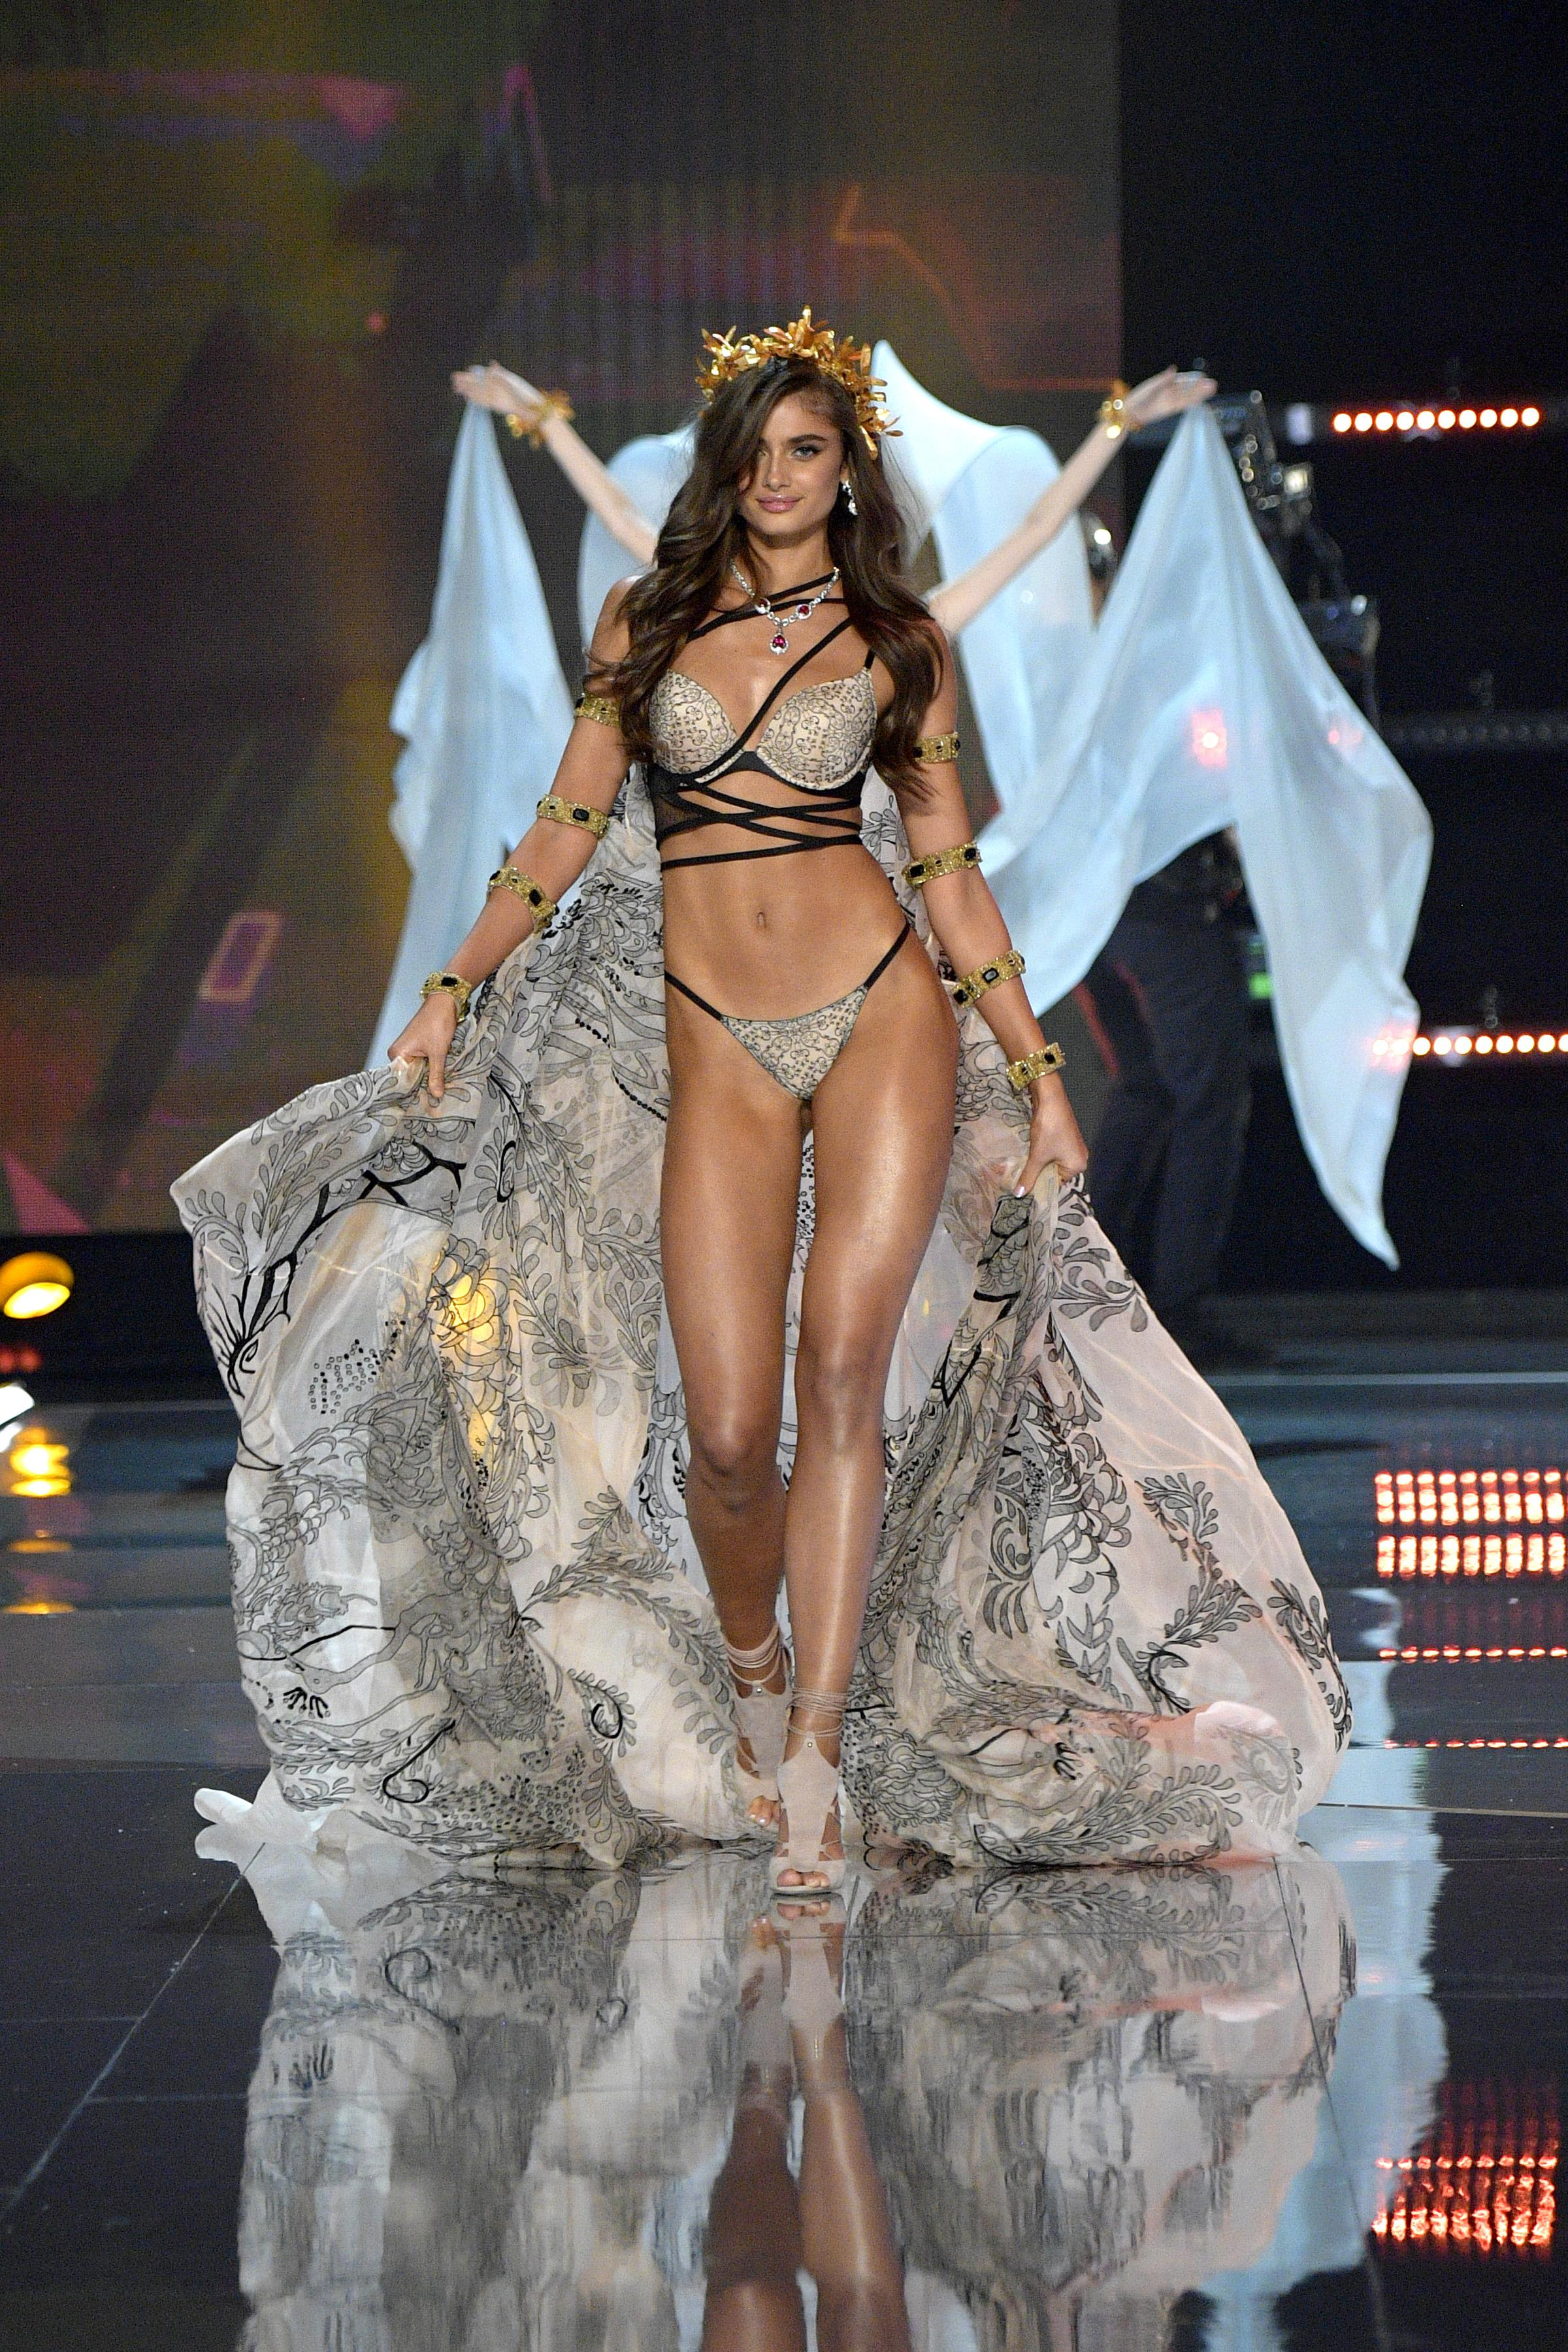 567aedcfc Taylor Hill walked the runway at the 2017 Victoria's Secret fashion show in  Shanghai on Nov. 20, 2017. Photo: Matt Winkelmeyer/Getty Images for  Victoria's ...